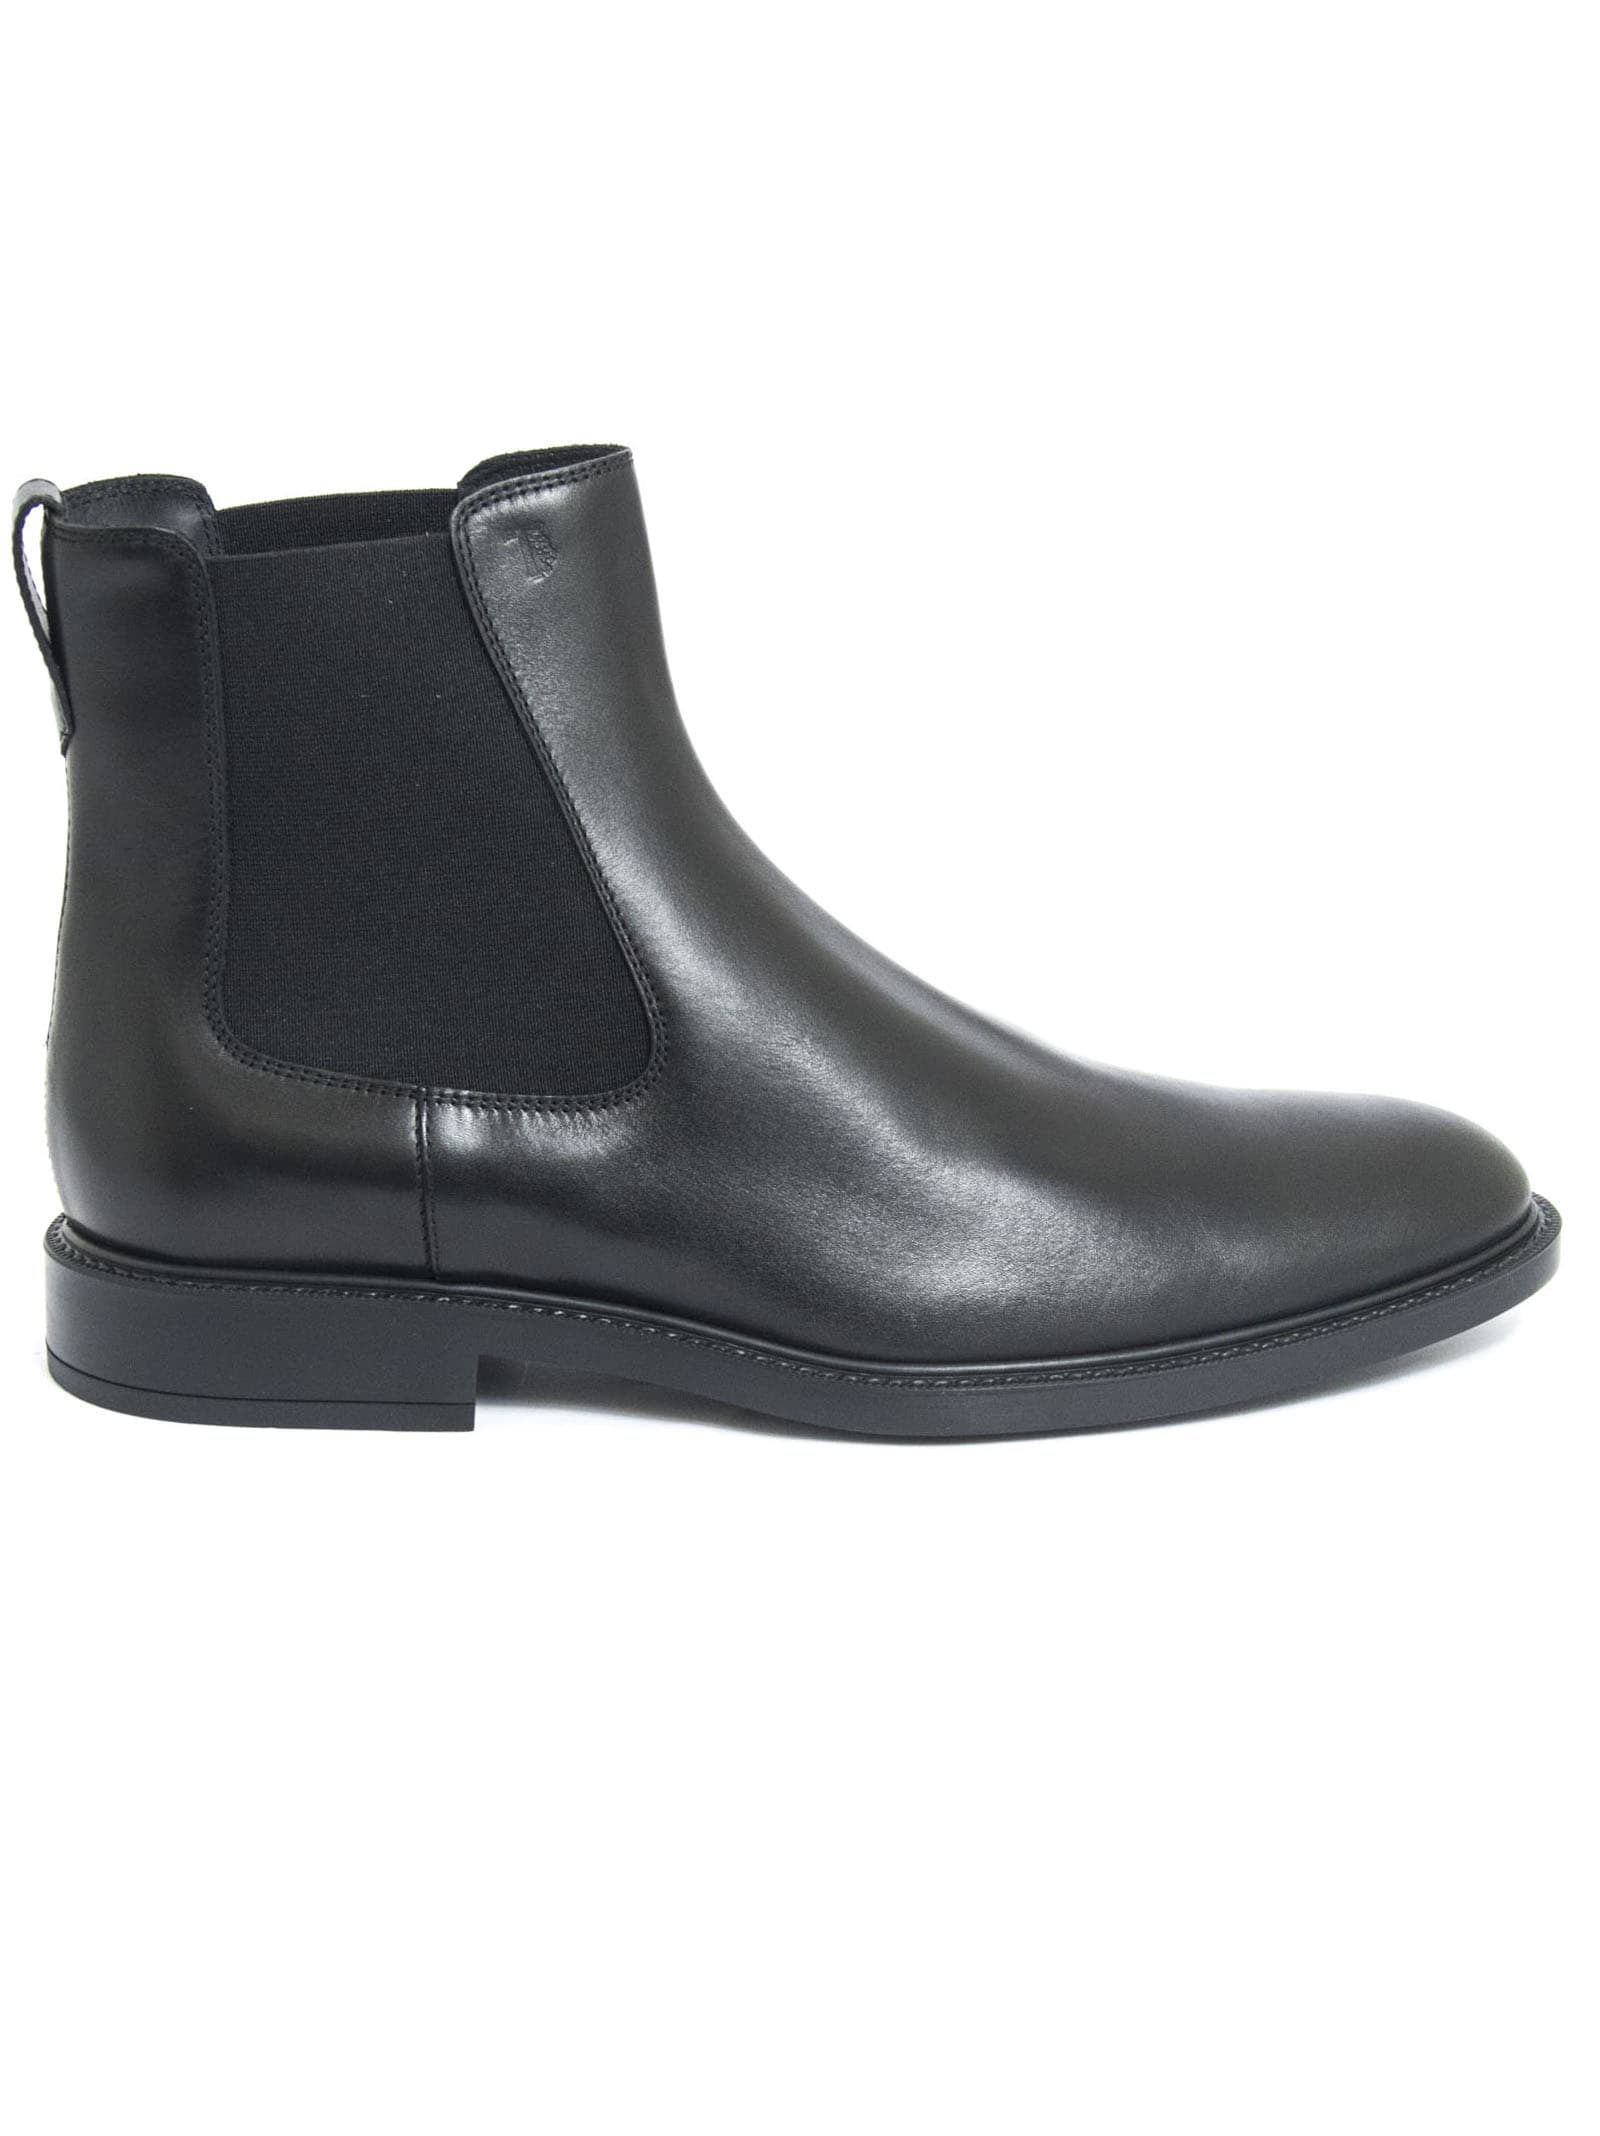 Tods Ankle Boots In Black Smooth Leather